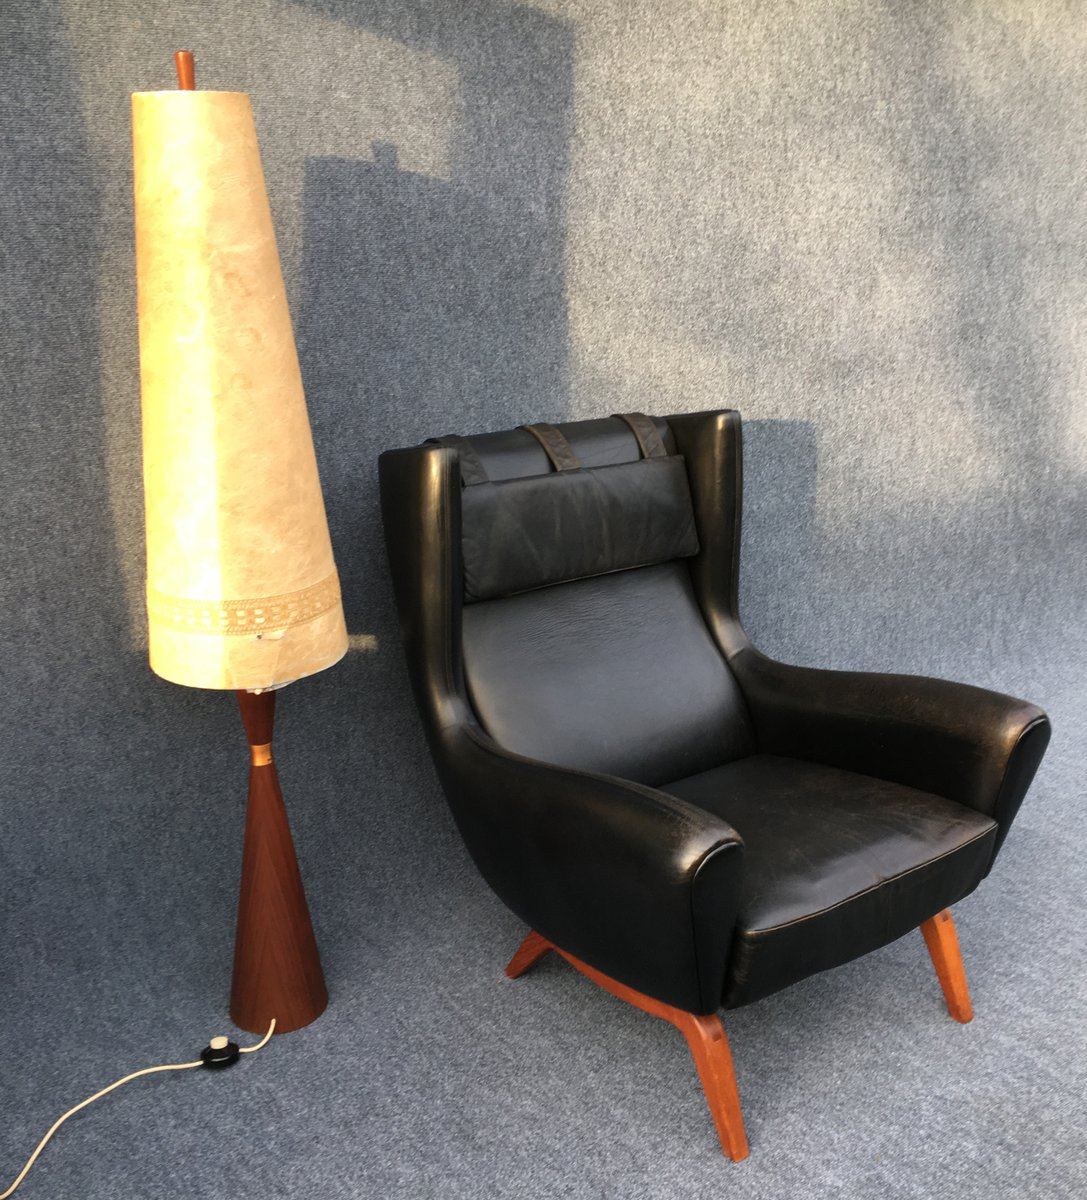 Black Leather Lounge Chair Black Leather Lounge Chair By Illum Wikkelsø For Søren